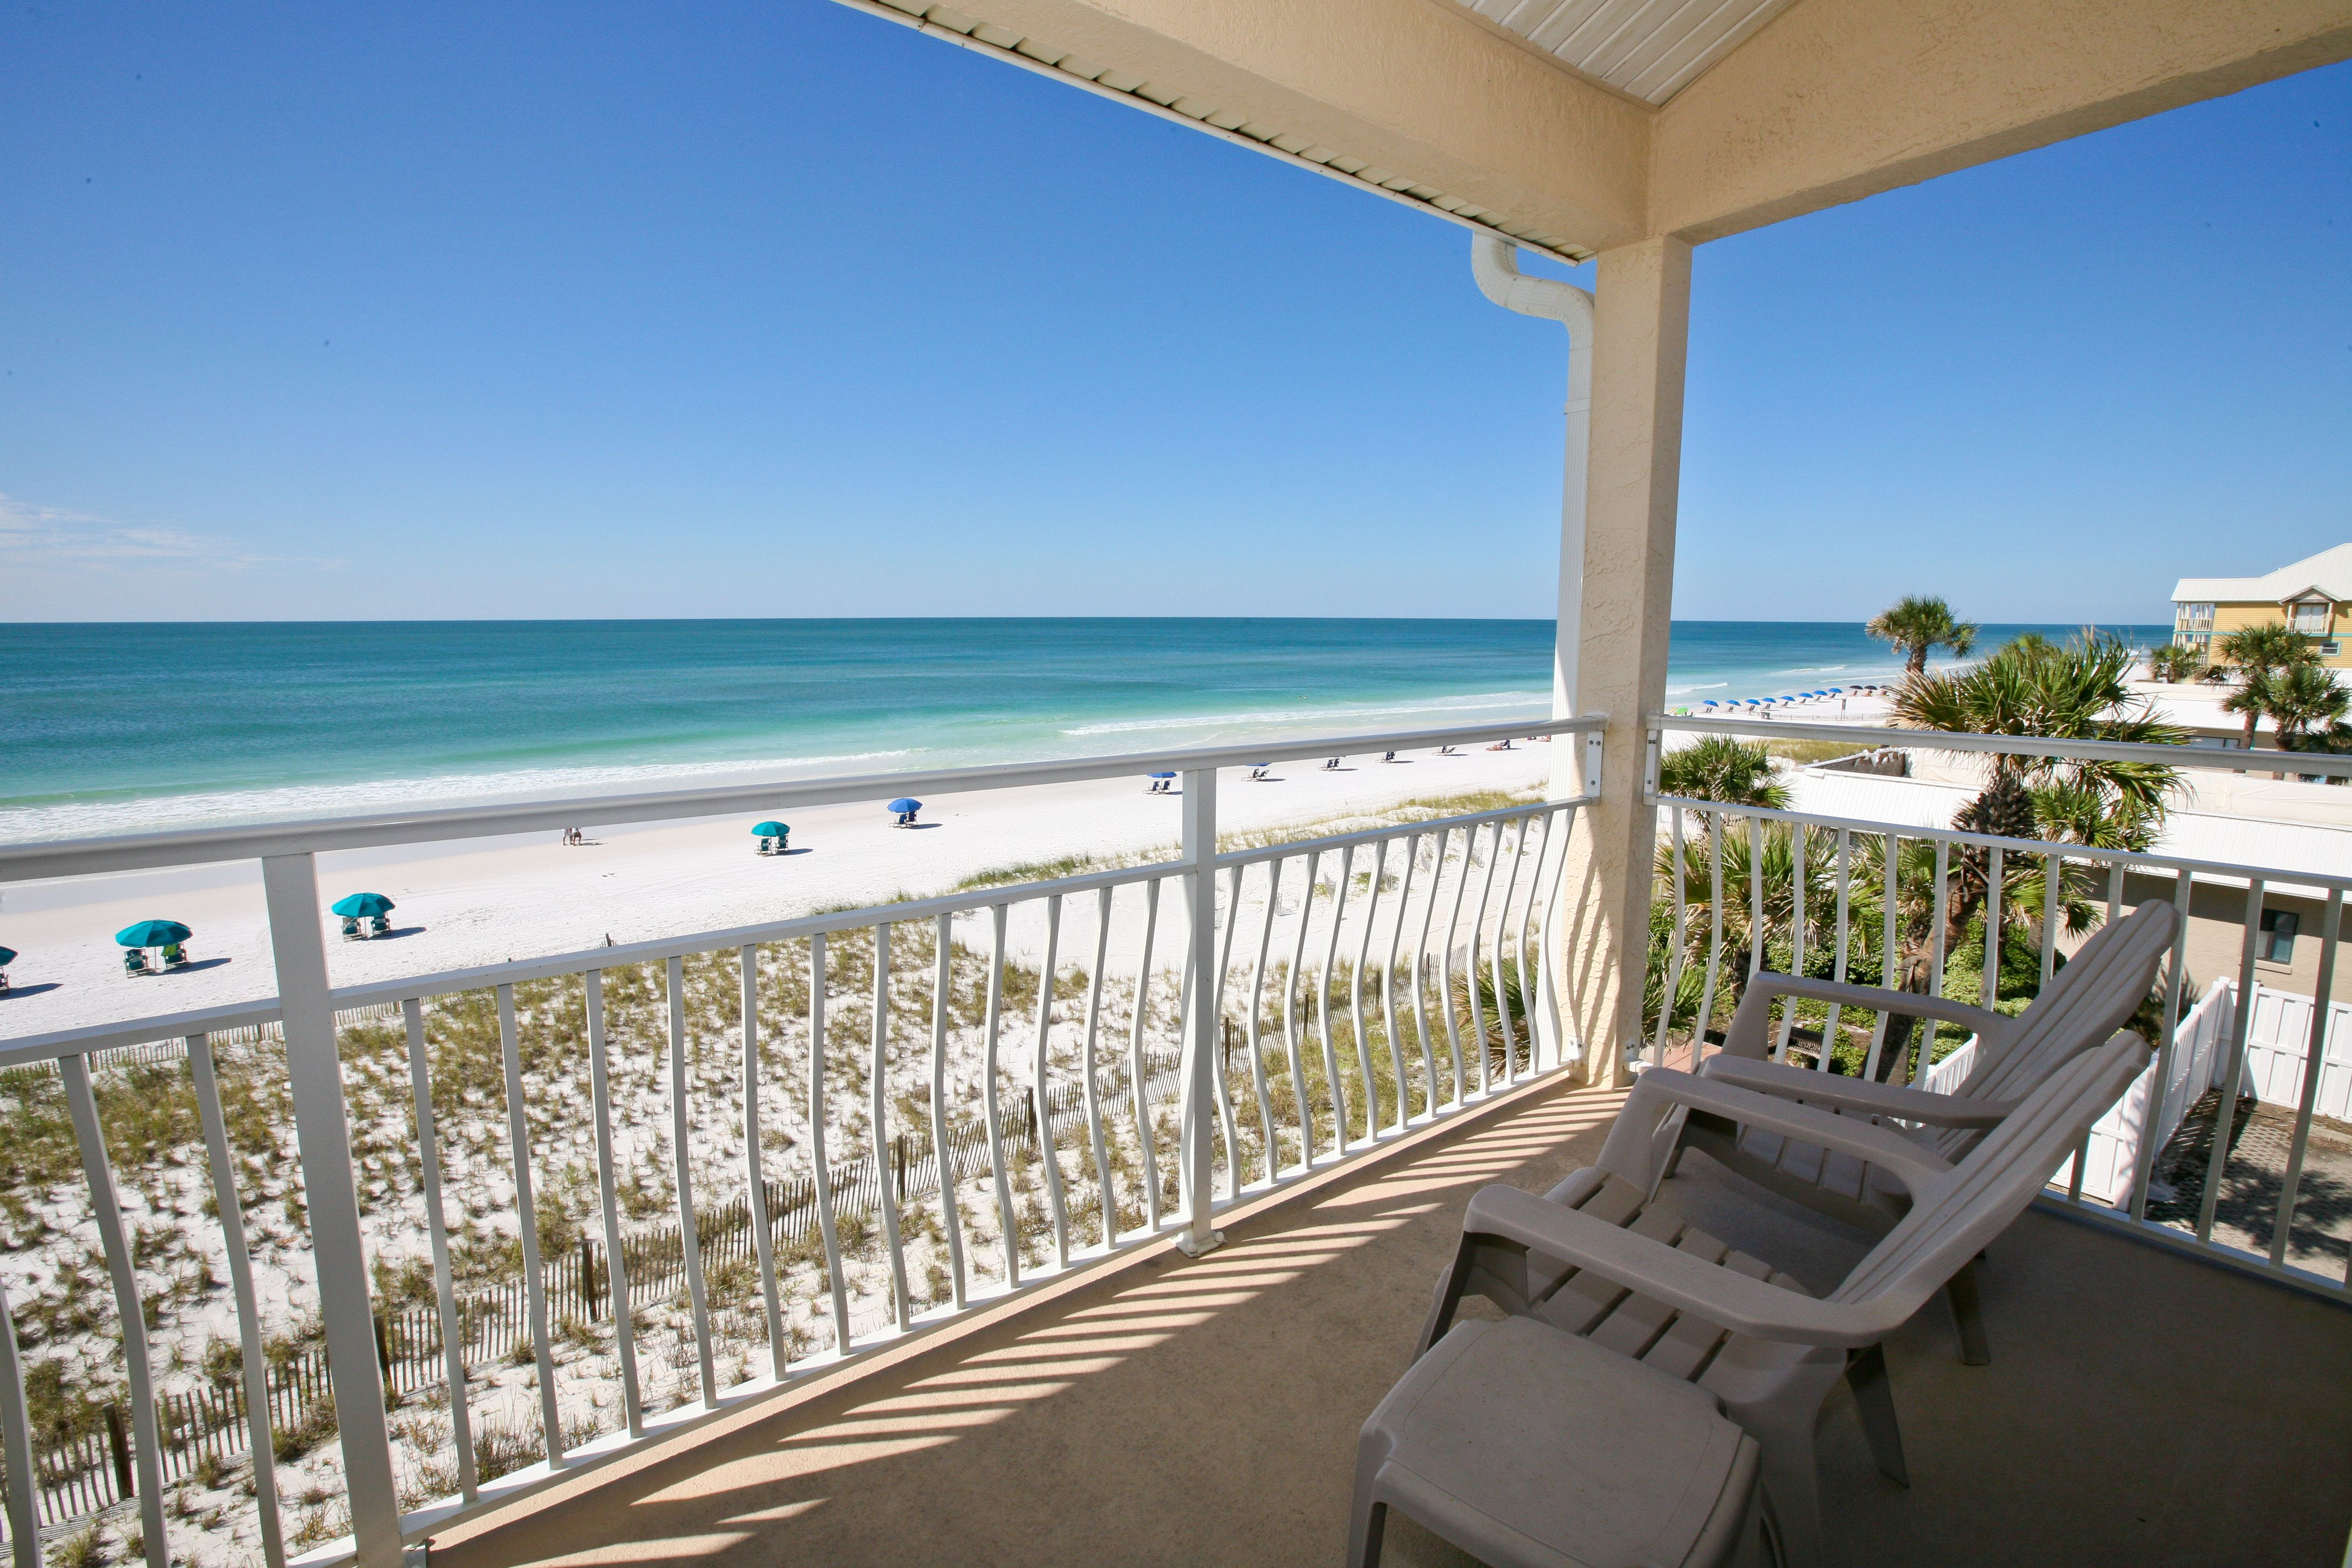 Back Porch At Crystal Sands Condominium In Destin Florida Does It Get Any Better Than This Destin Resort Vacation Spots